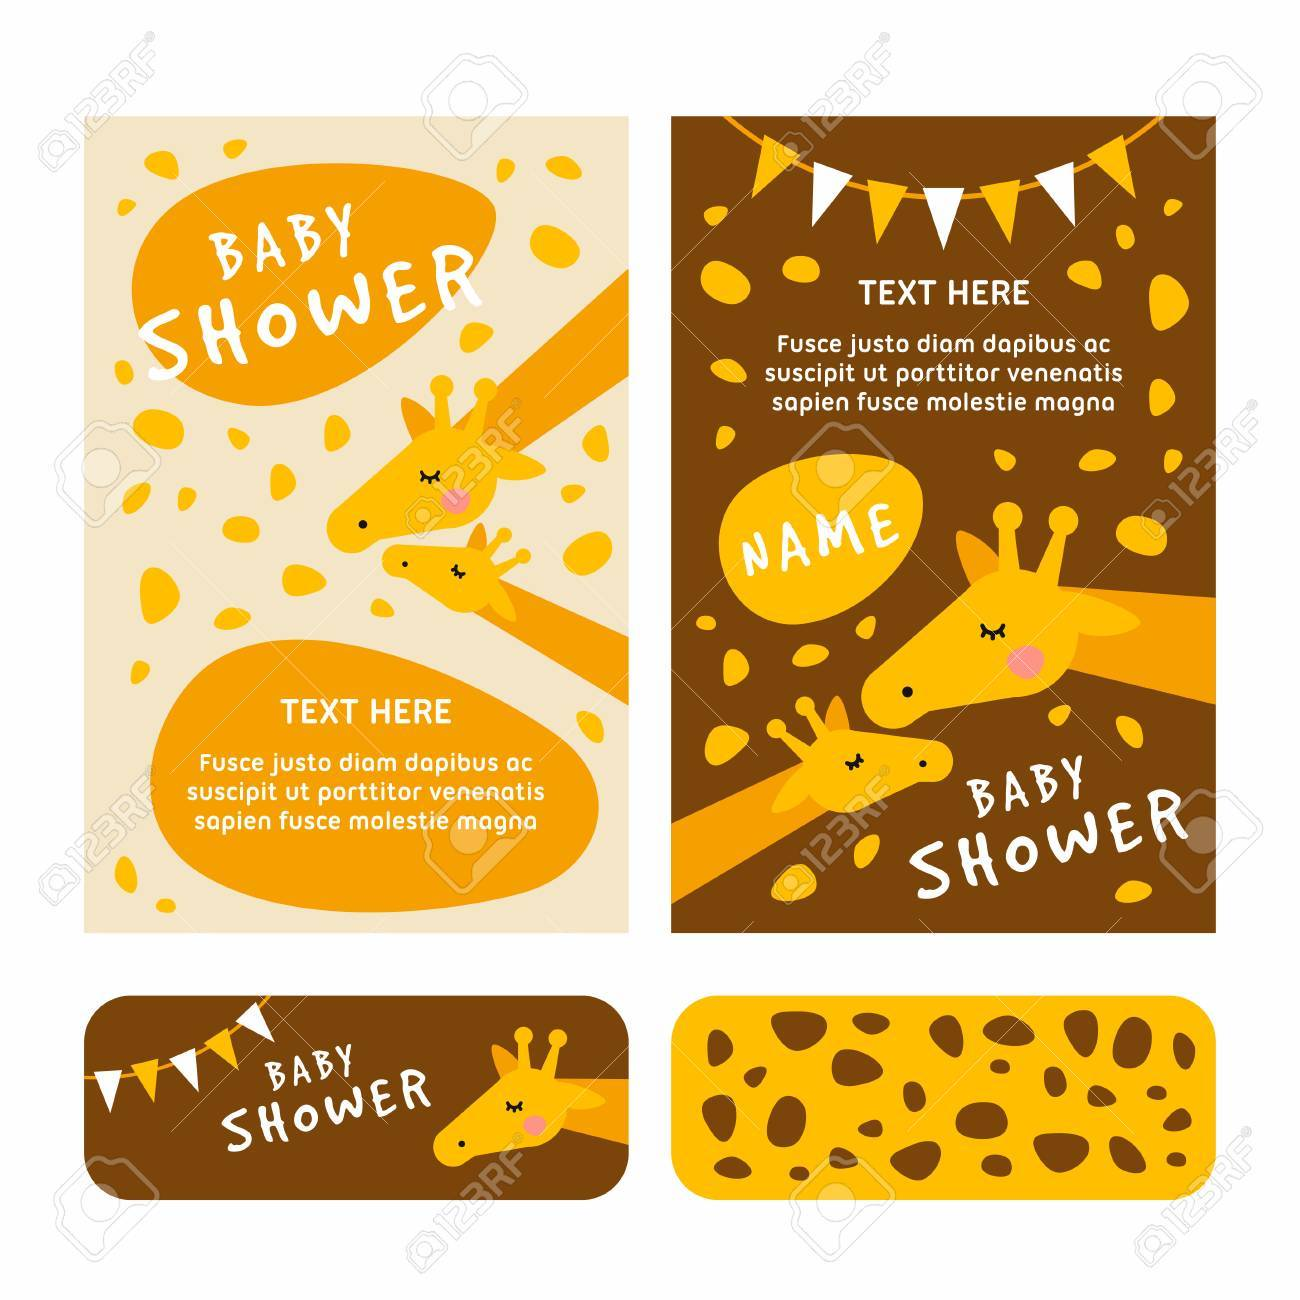 Baby shower invitation card template giraffee brown and yellow baby shower invitation card template giraffee brown and yellow sticker lovely stopboris Images